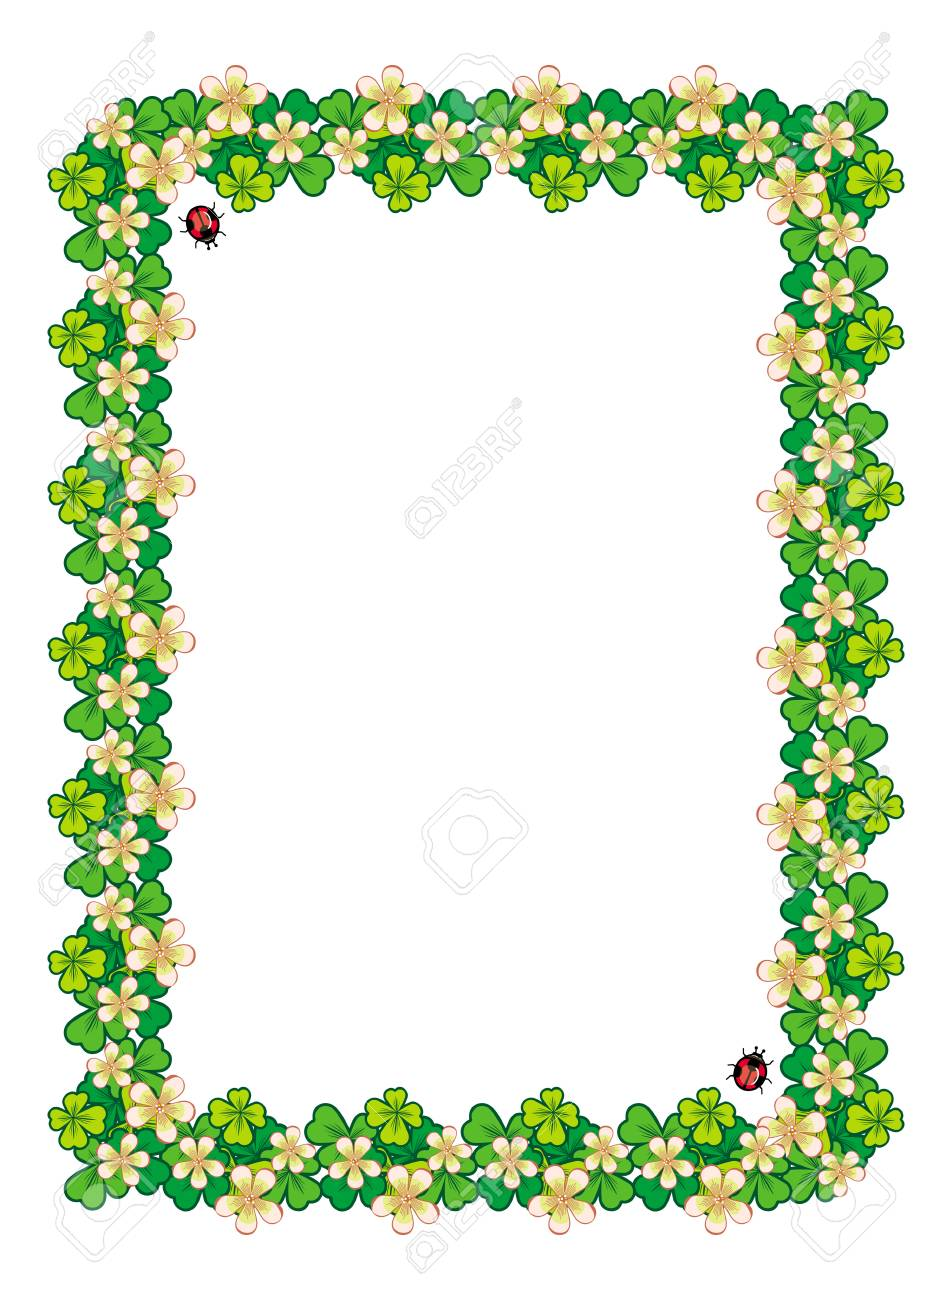 beautiful frame with clover and flowers royalty free cliparts vectors and stock illustration image 51640460 beautiful frame with clover and flowers